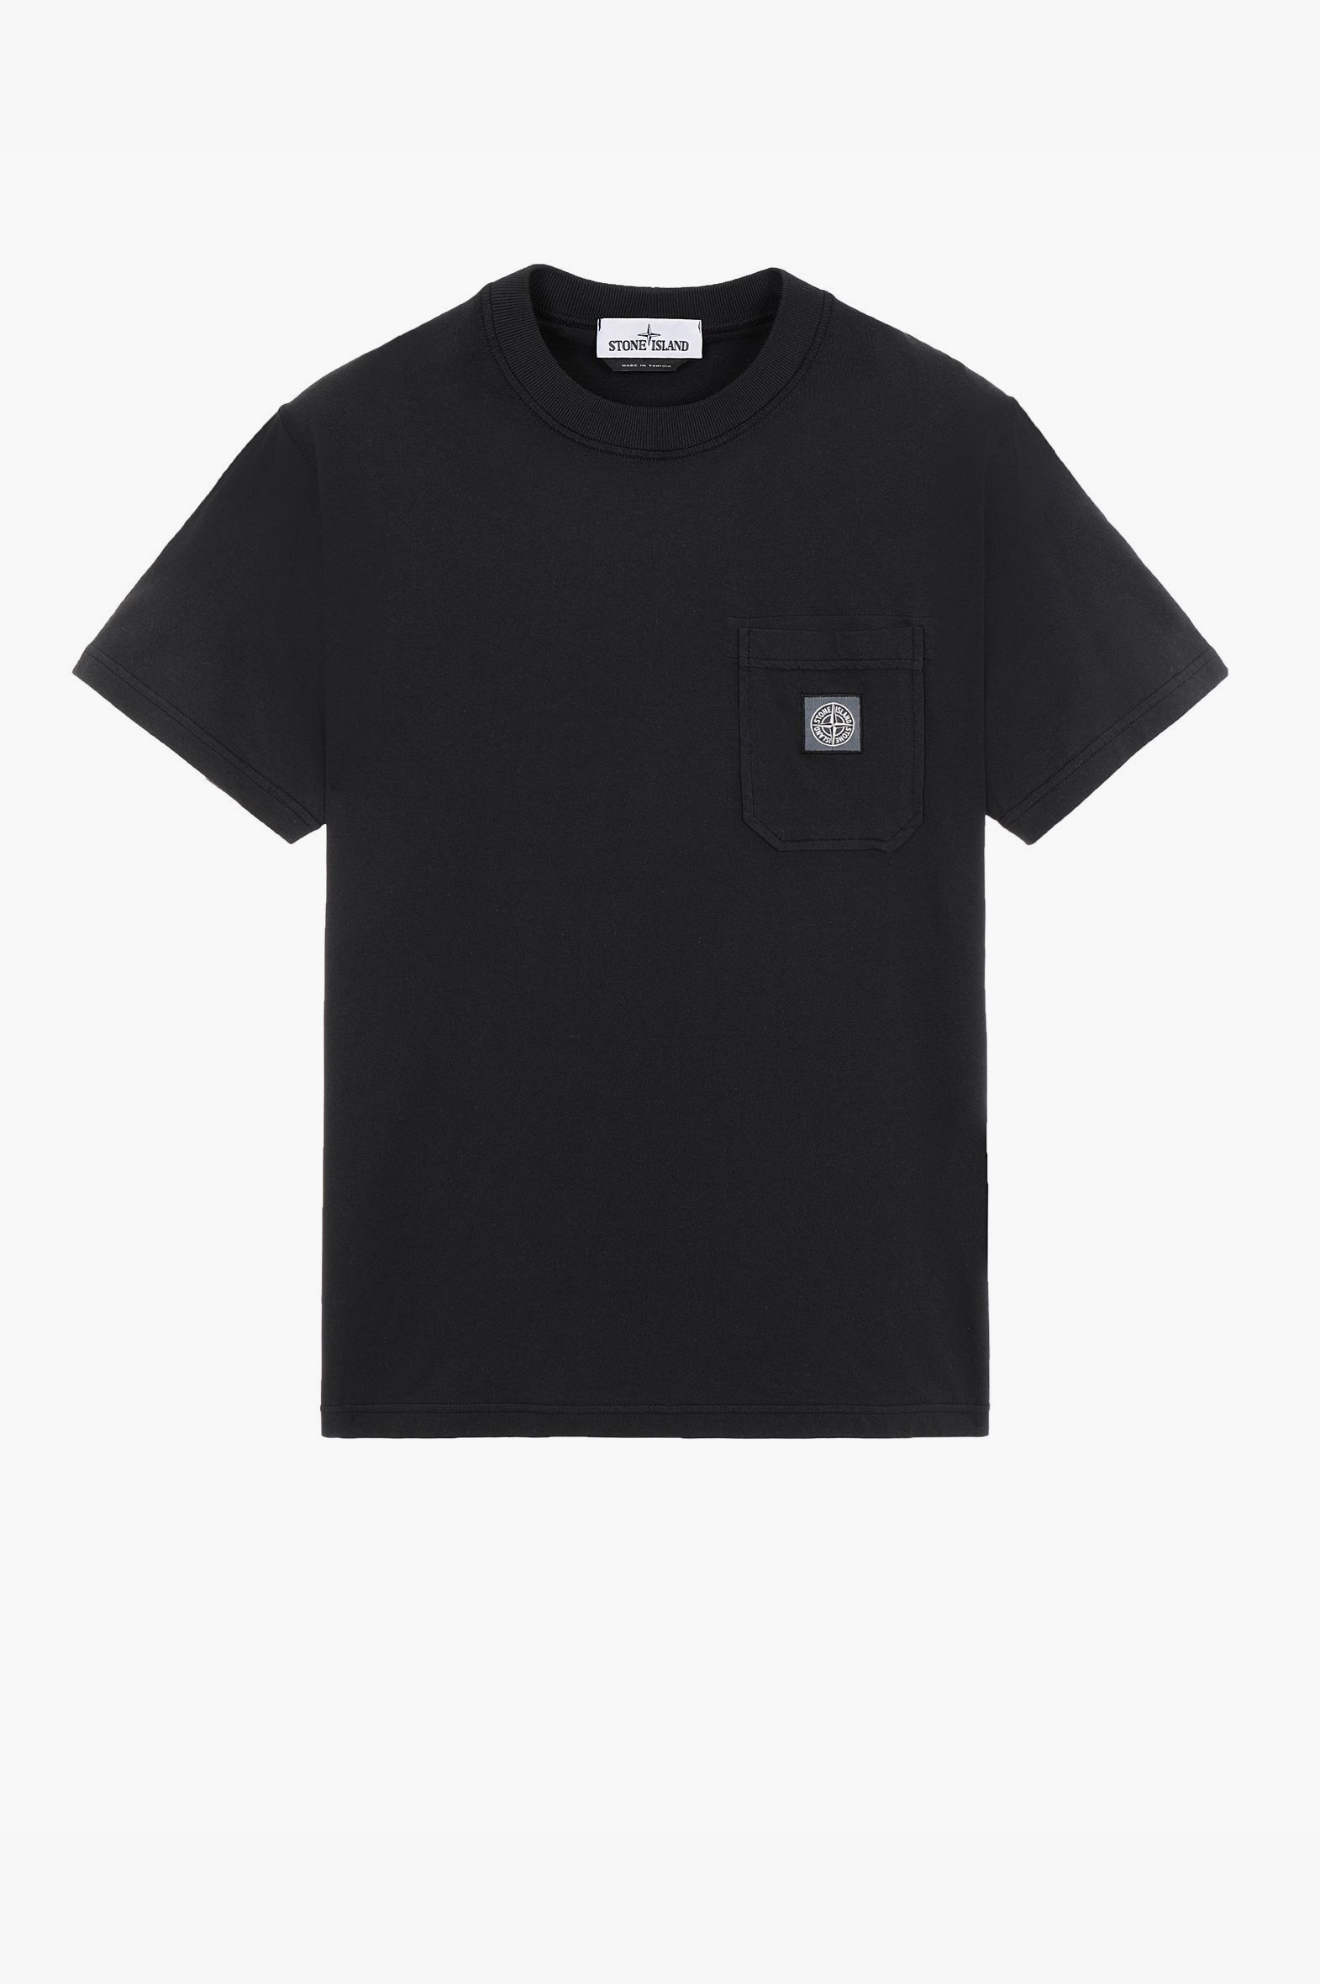 Pocket 'Fissato' T-Shirt Black